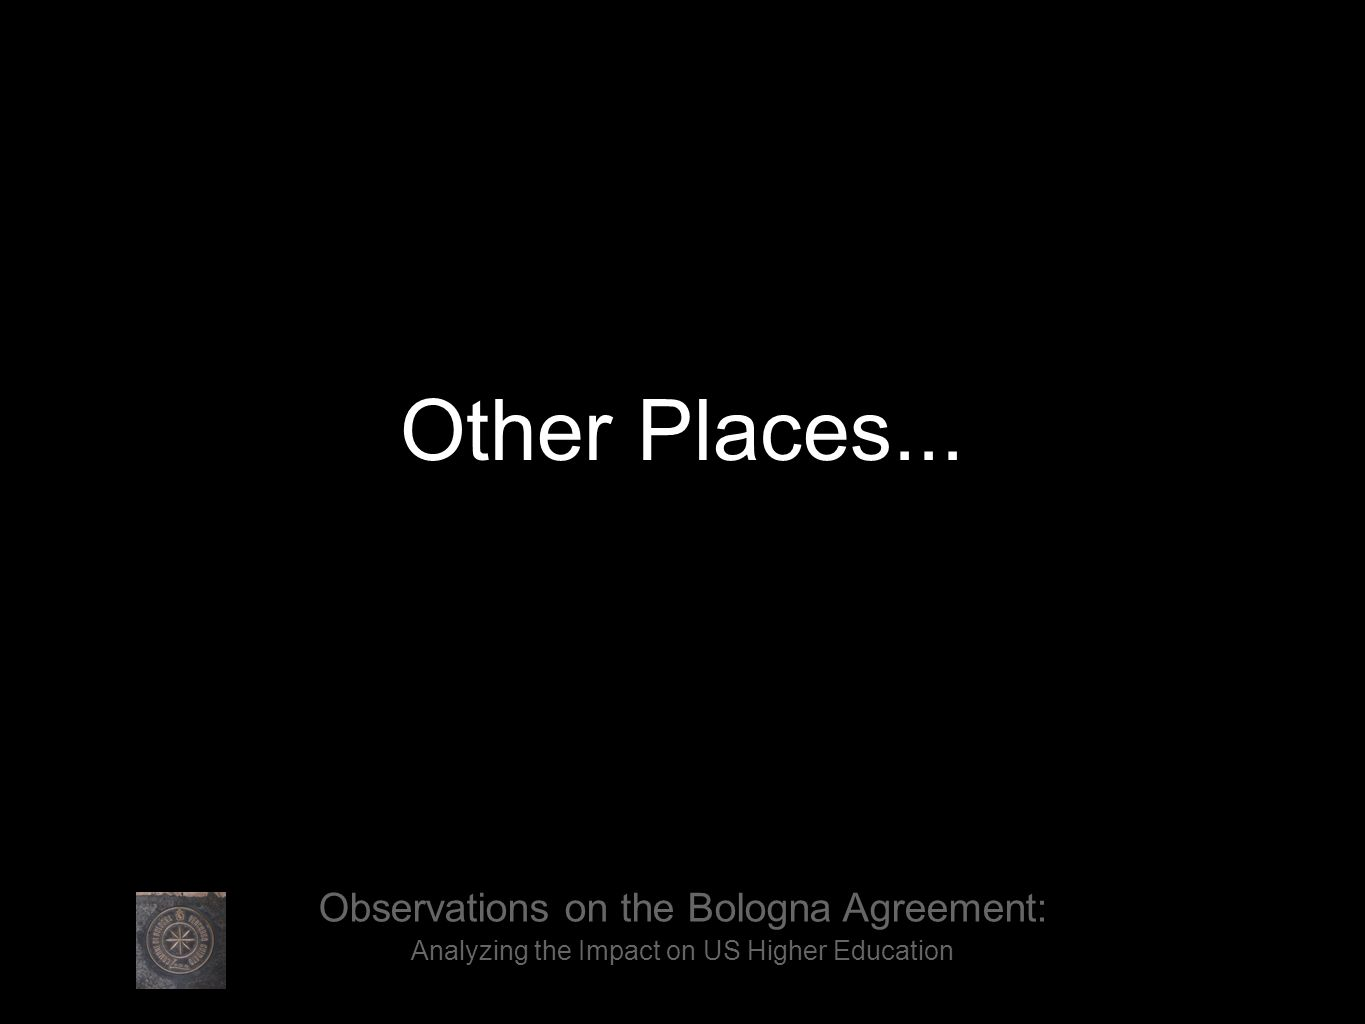 Other Places... Observations on the Bologna Agreement: Analyzing the Impact on US Higher Education